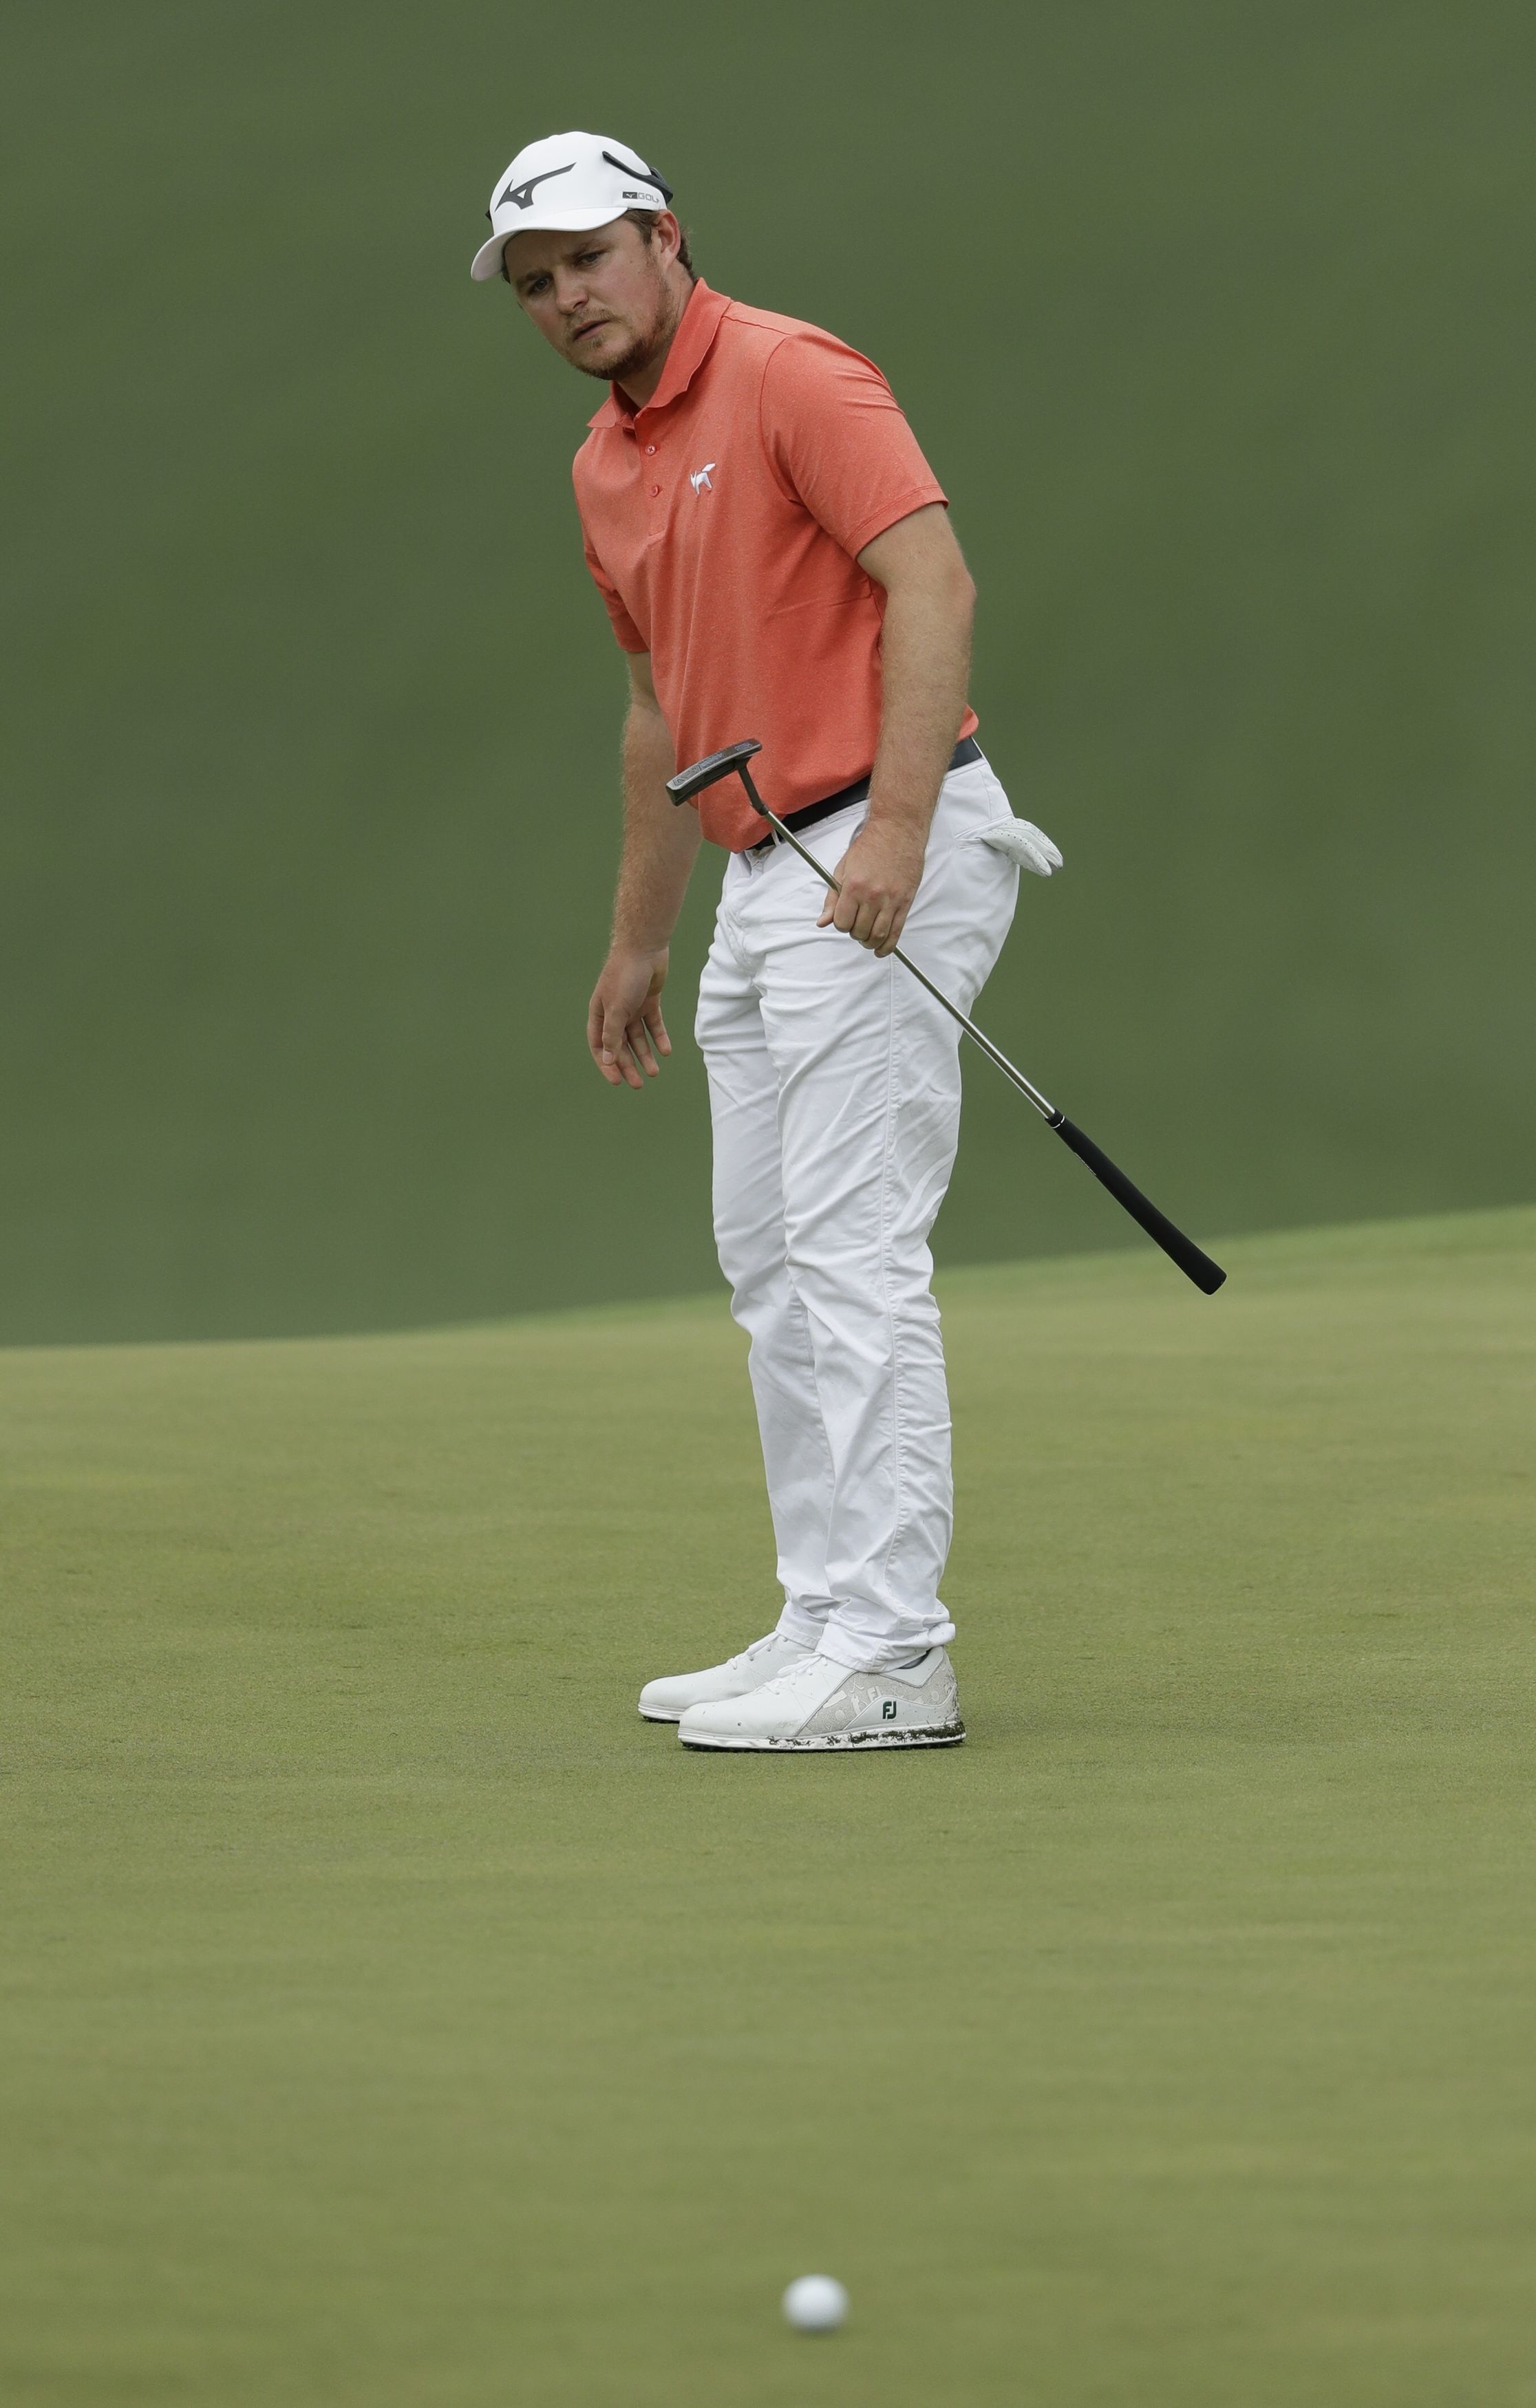 Eddie Pepperell during the third round at the Masters at Augusta Picture: AP /Marcio Jose Sanchez